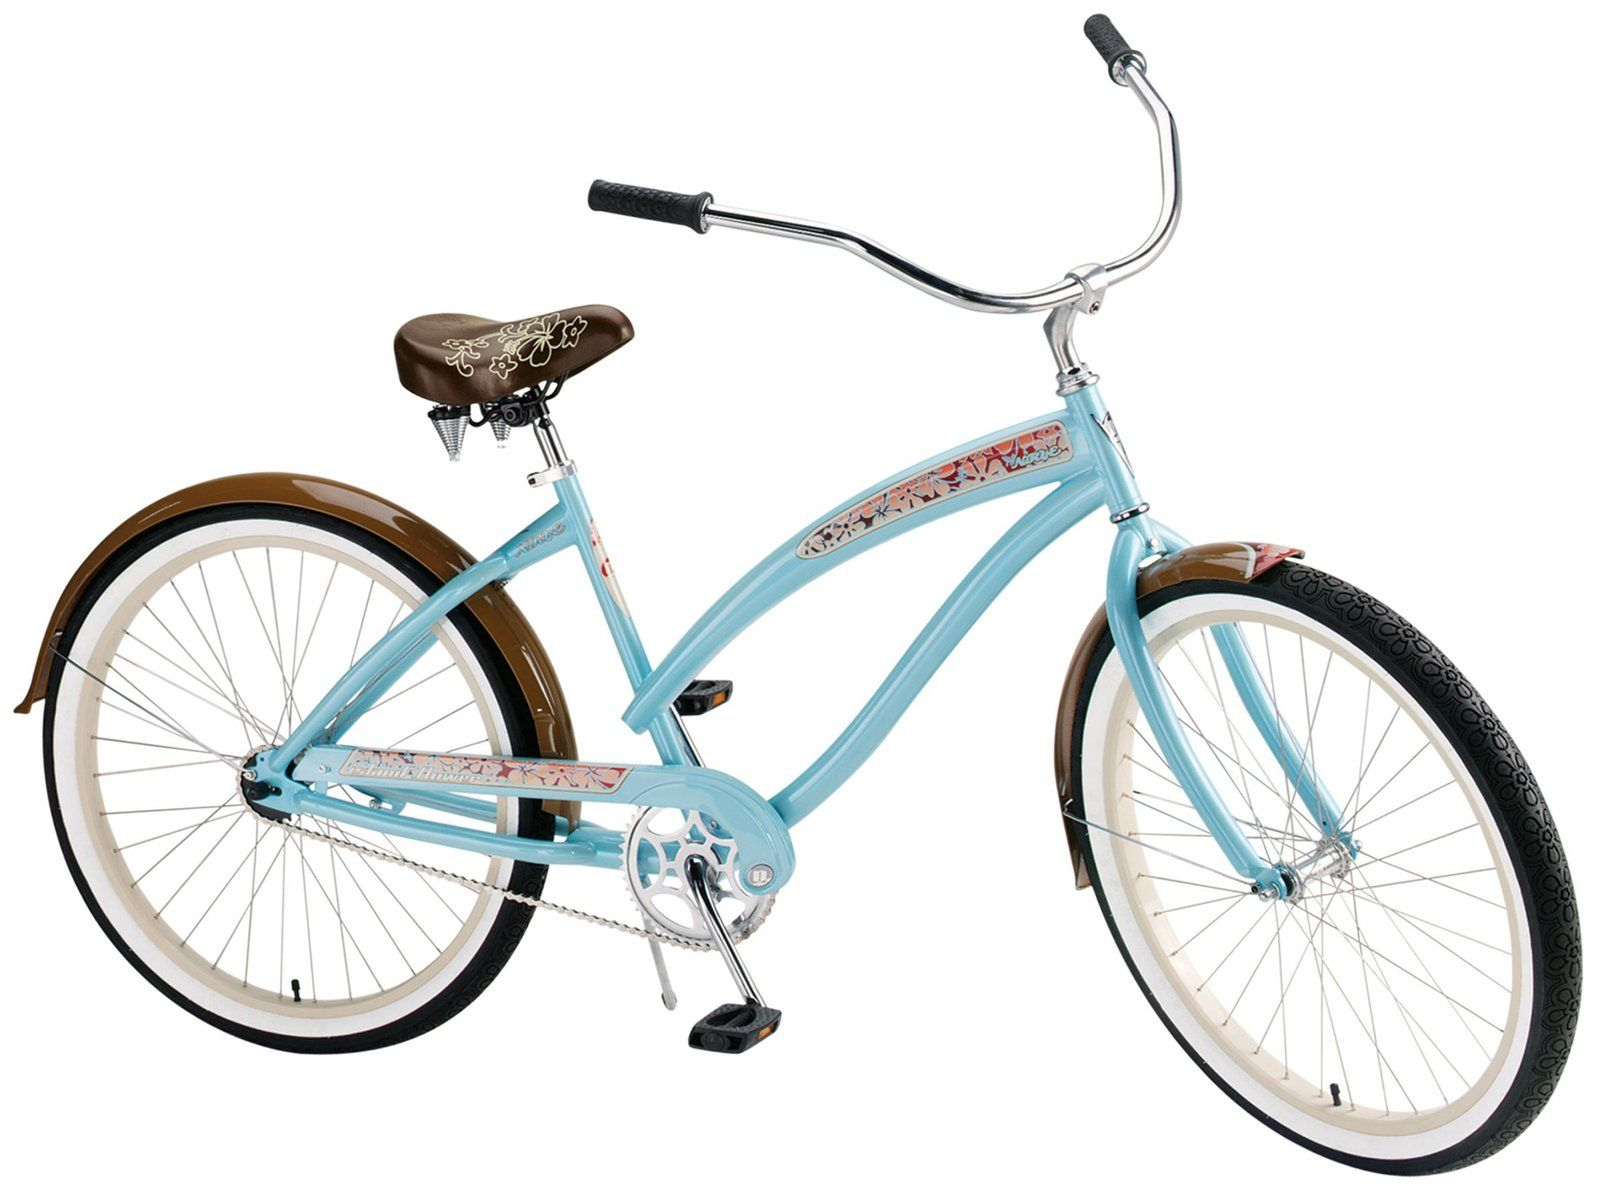 This nirve island flower 3 women s cruiser bike looks awesome it is a pity that is not available in australia oh well another item added to my w